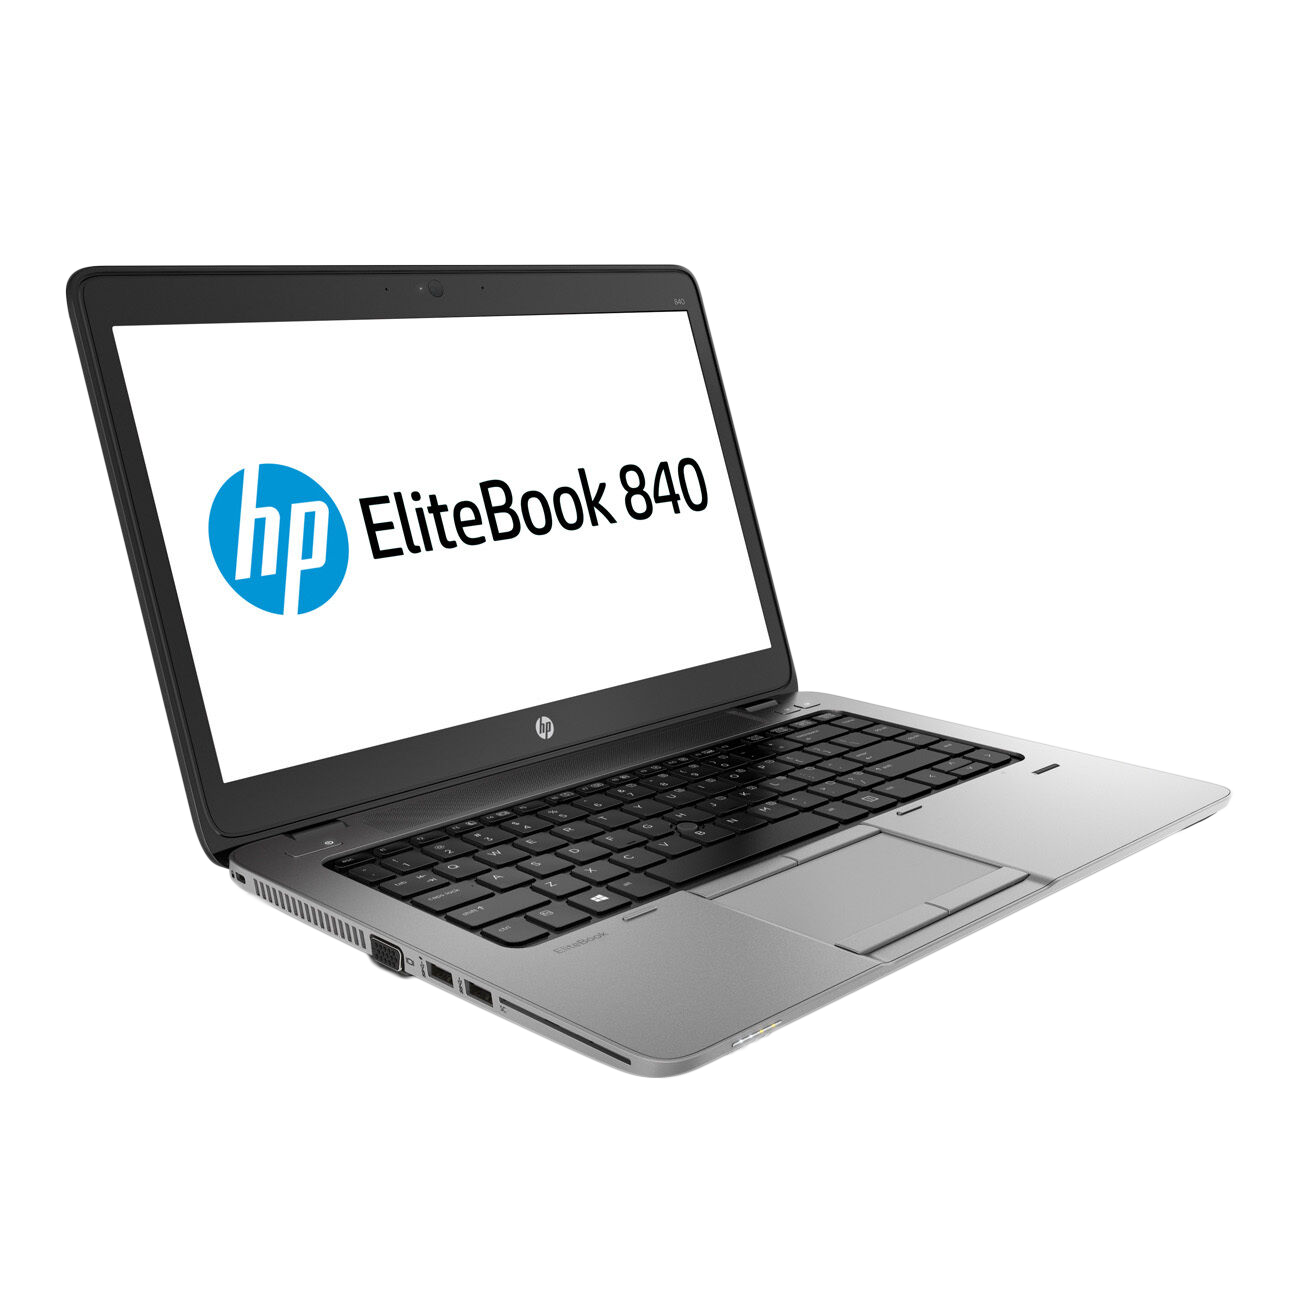 HP EliteBook 840 G2 Ultrabook Laptop i5-5300U 2.30GHz 4GB RAM 250GB HDD (Customisable)